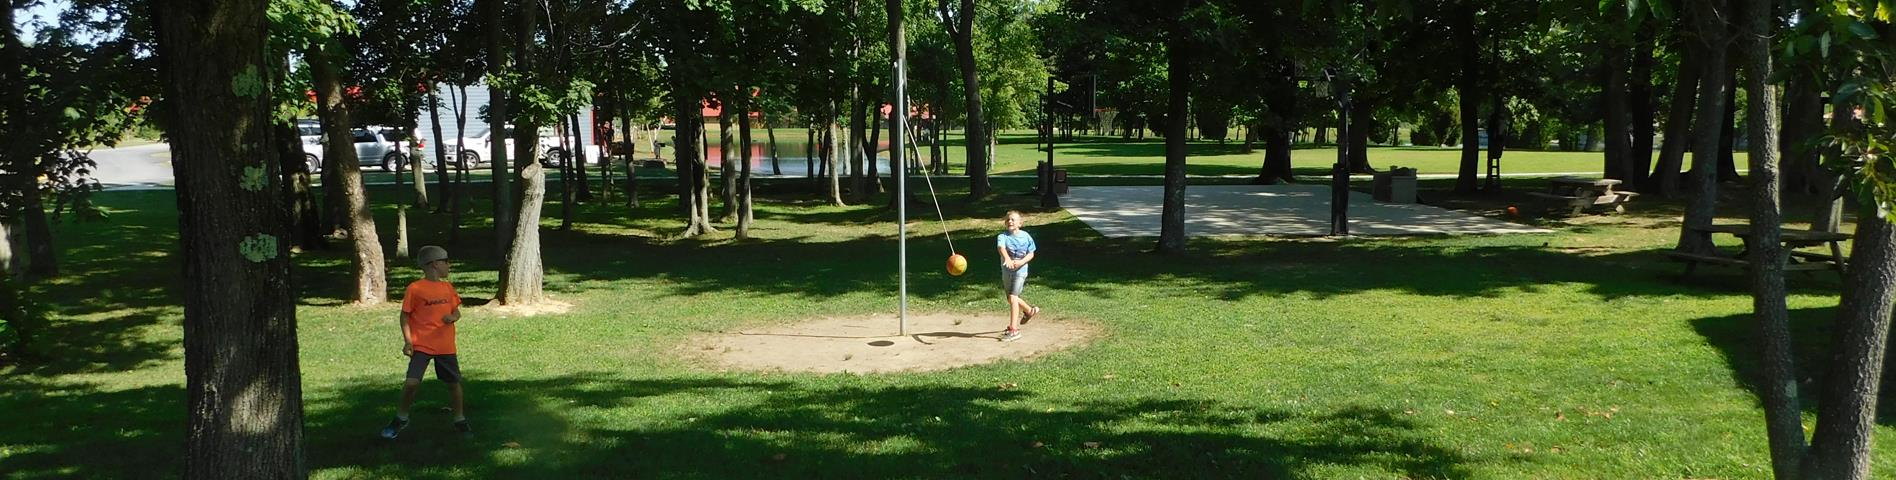 children-playing-tether-ball.jpg